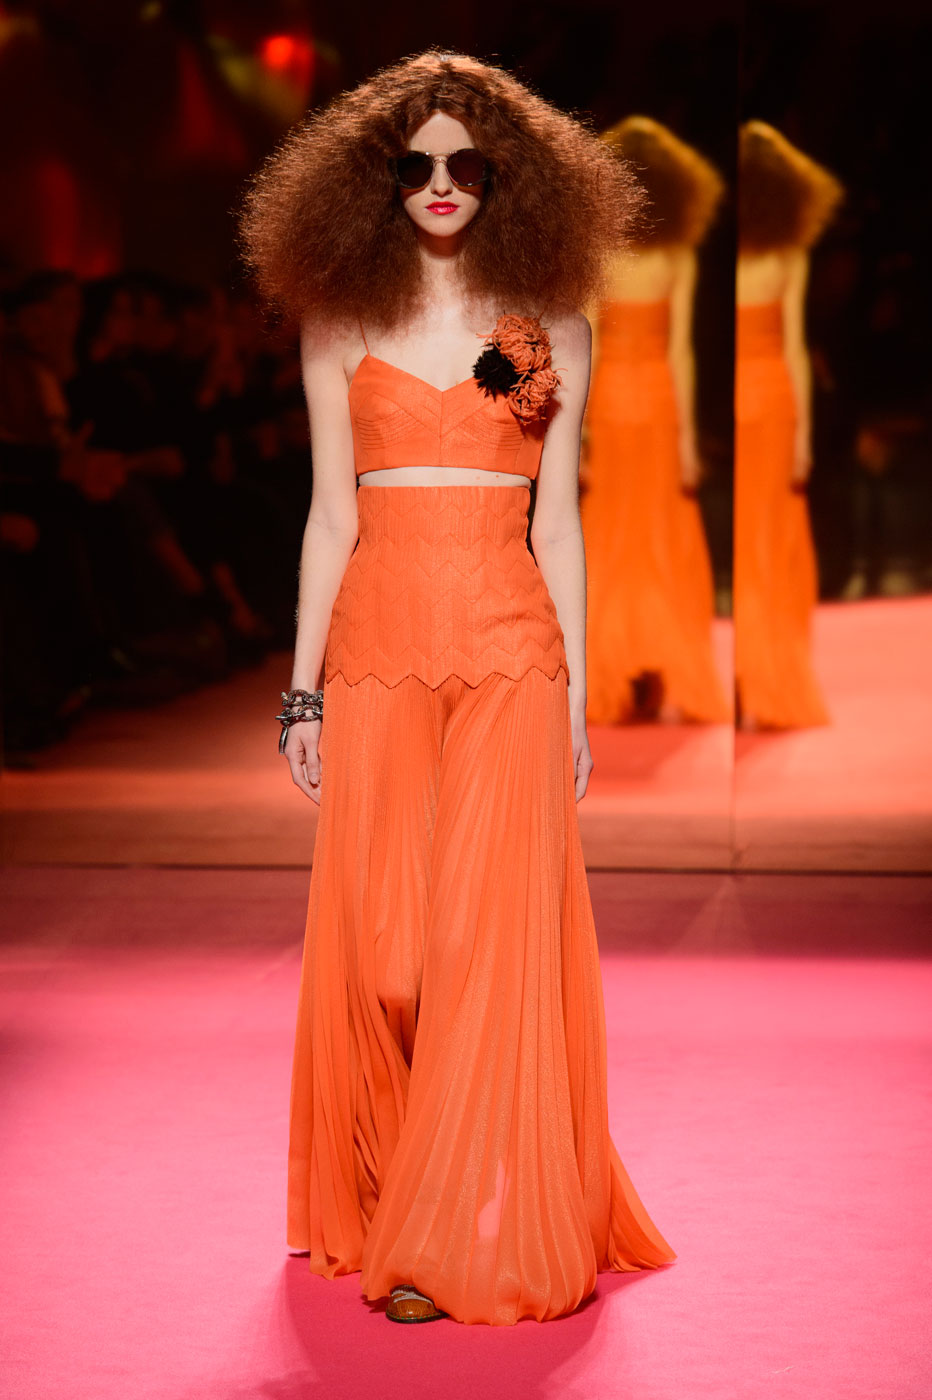 Schiaparelli-fashion-runway-show-haute-couture-paris-spring-summer-2015-the-impression-30